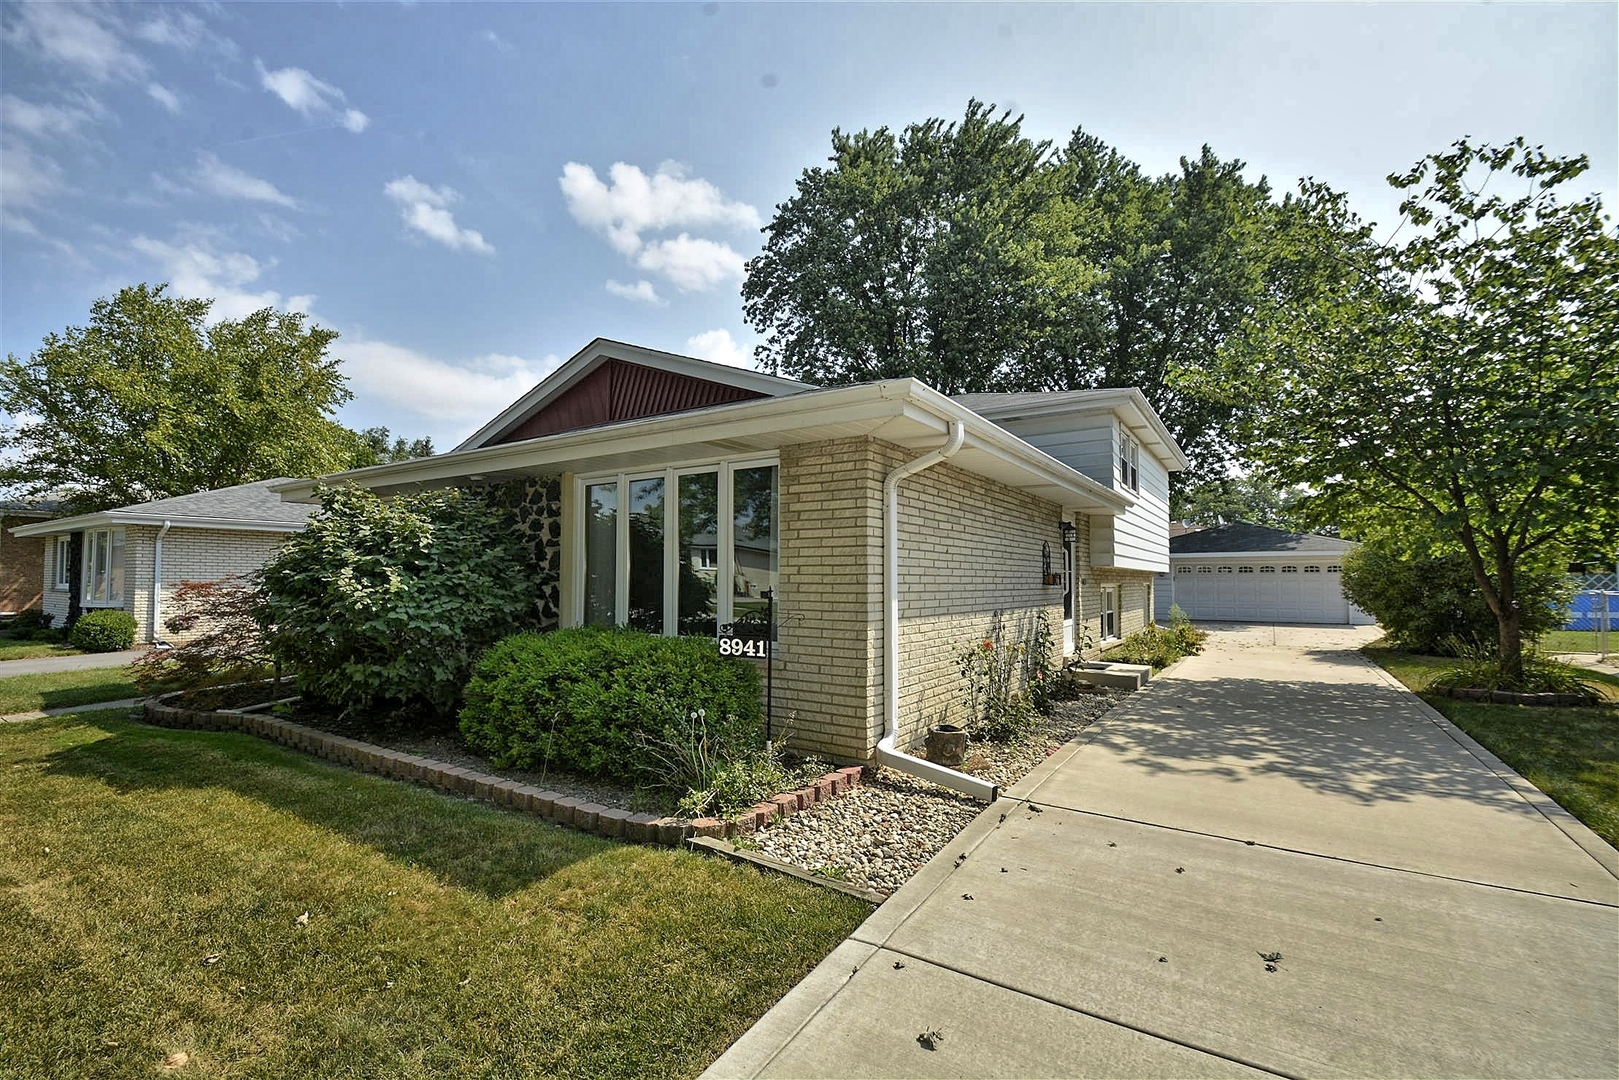 oak lawn asian singles Oak lawn subdivisions with single family homes for sale: columbus manor - 1 home for sale columbus manor is a single family home subdivision columbus manor is located in oak lawn, illinois south.